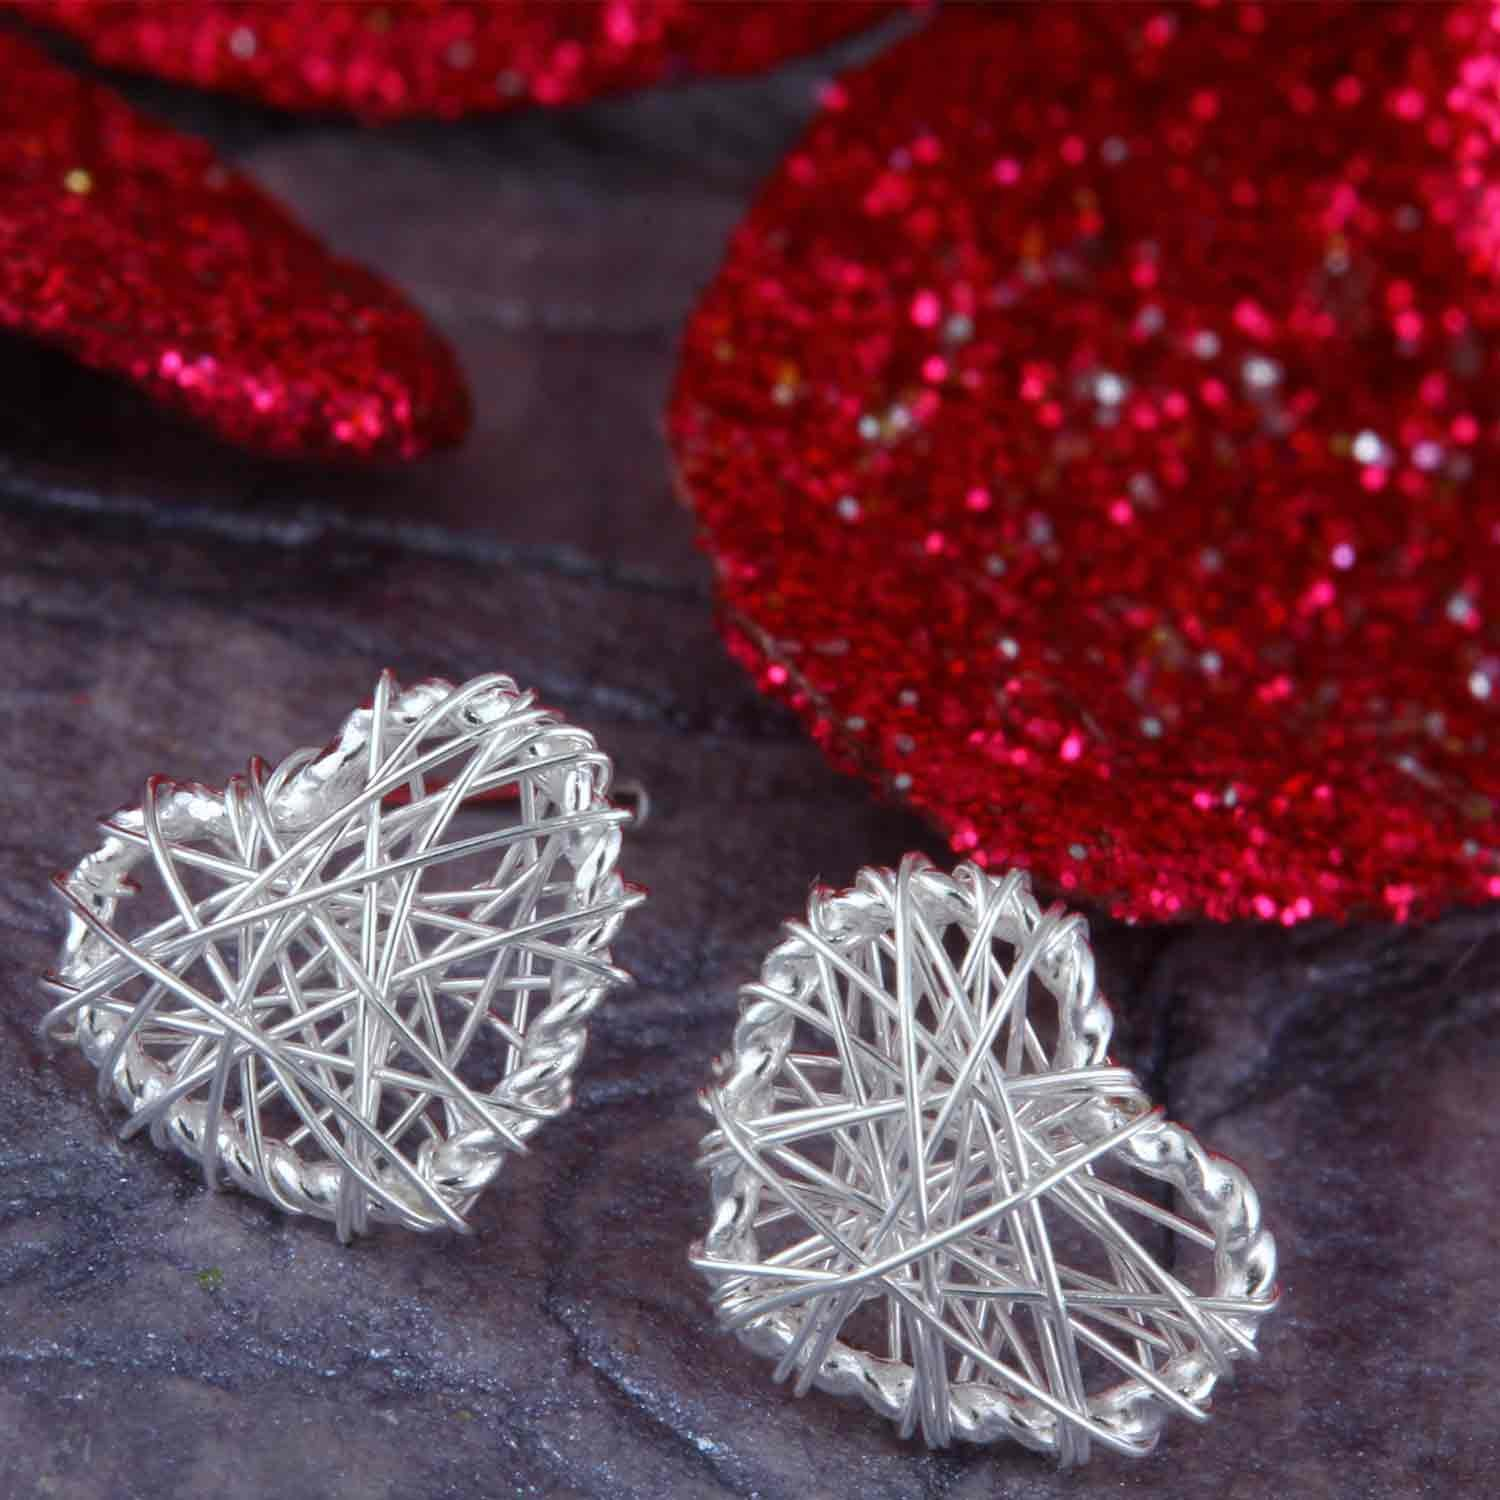 Wired Heart Stud Earrings